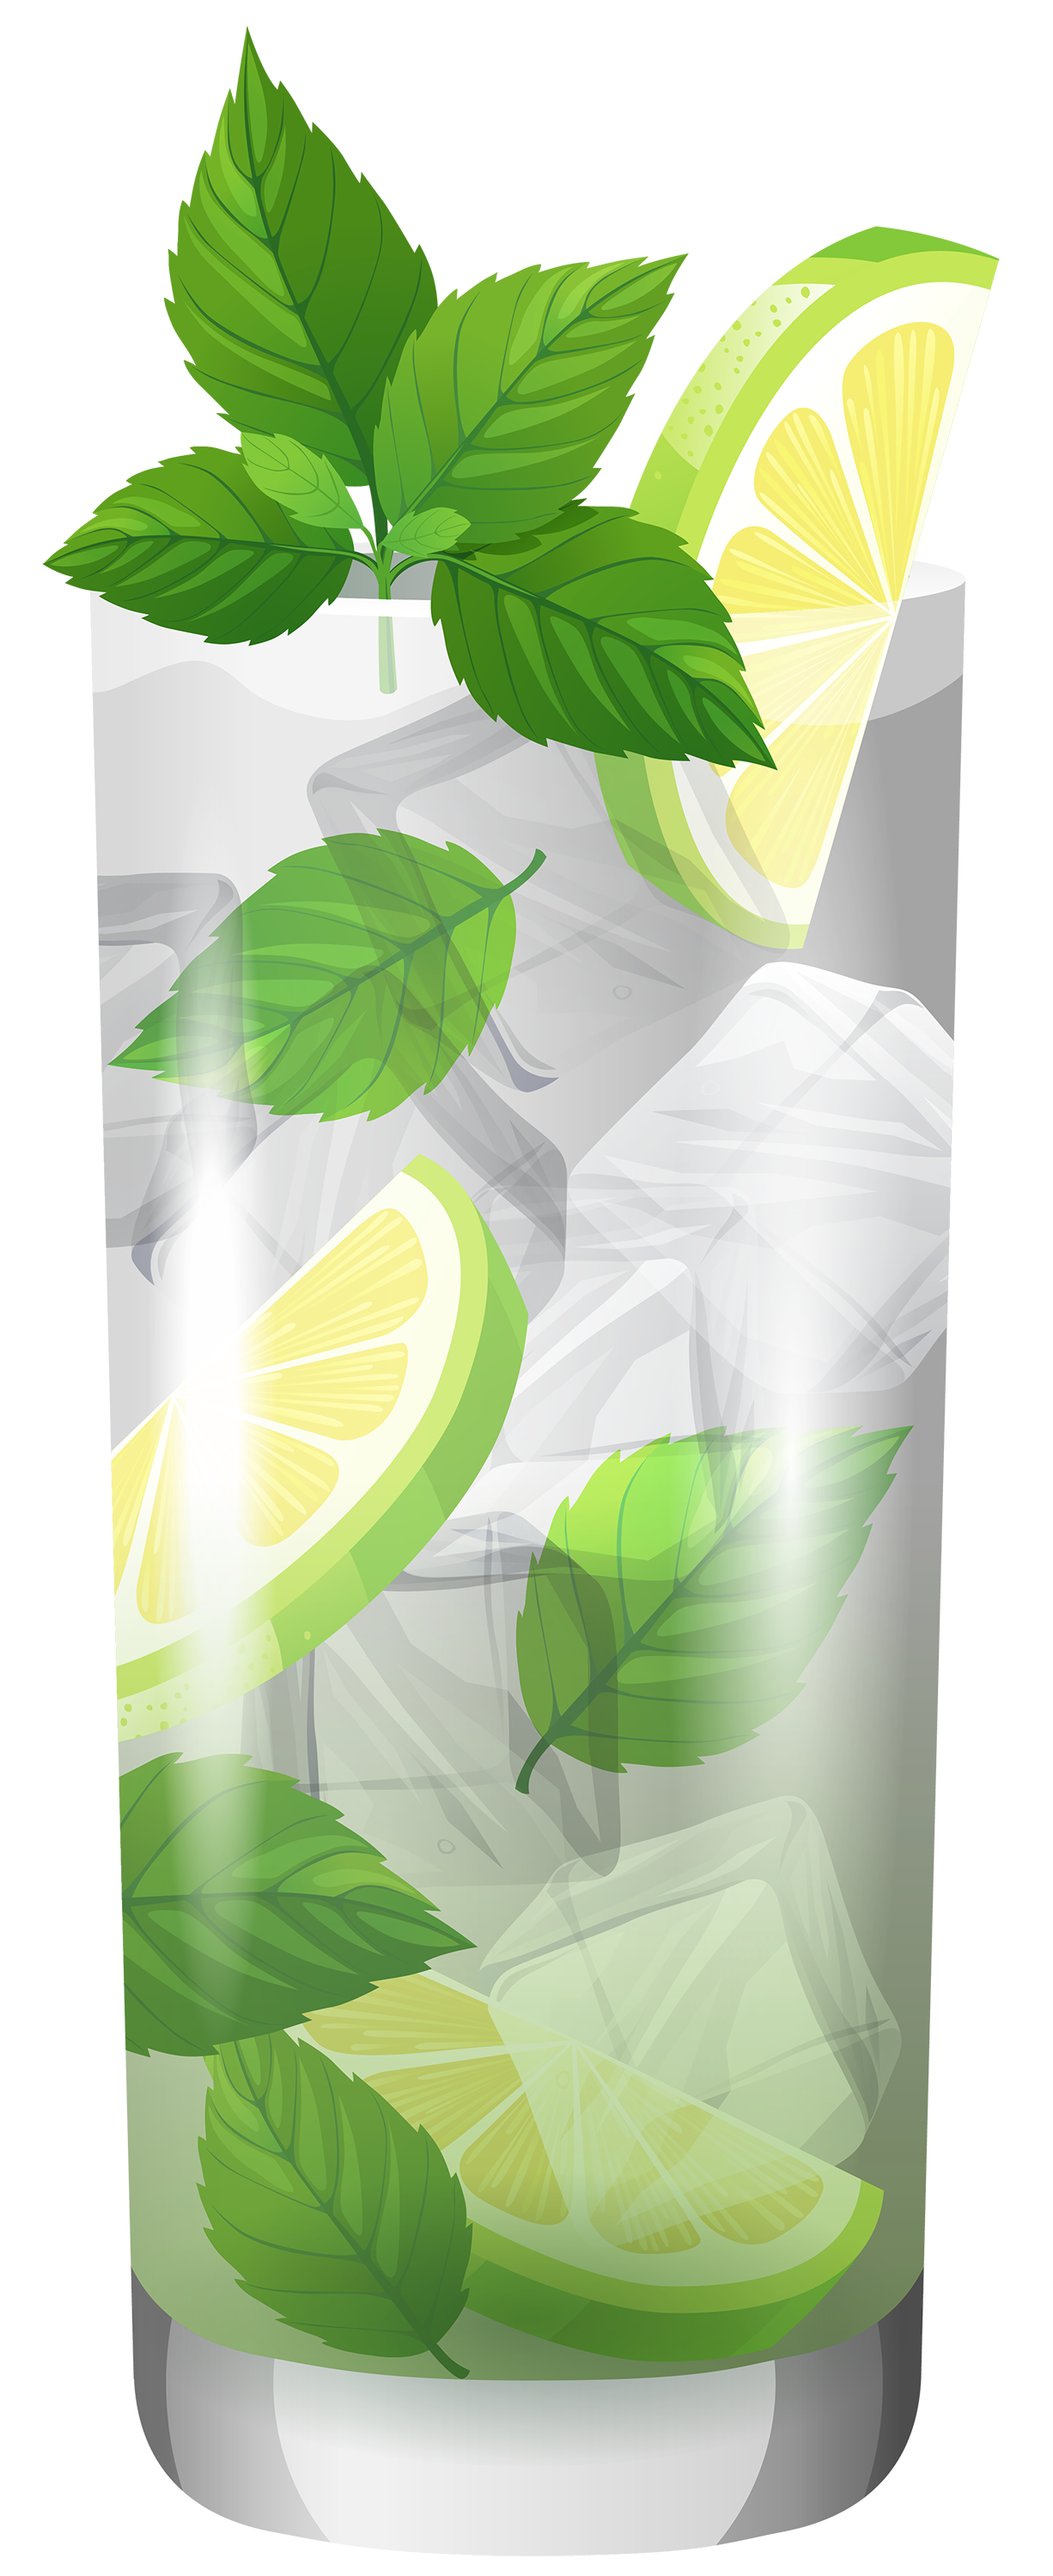 Cocktail clipart mojito. Transparent png best web